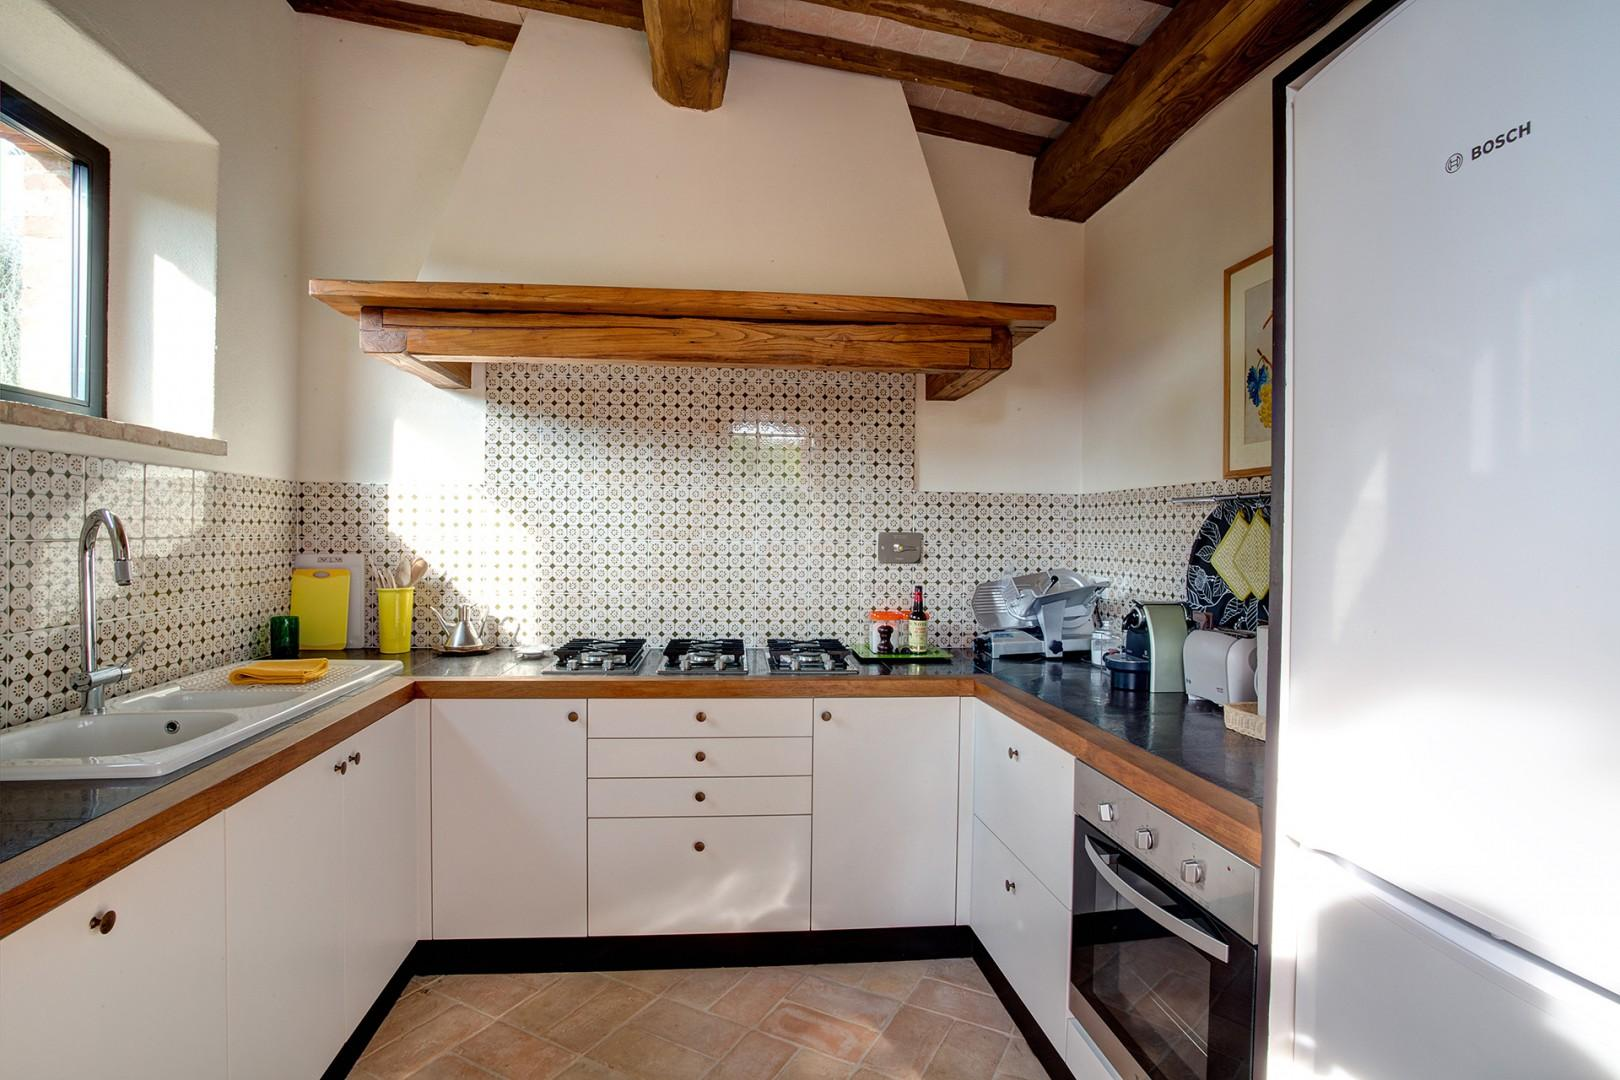 Modern kitchen with all the conveniences. Cook prepares lunch or dinner for you Monday thru Saturday